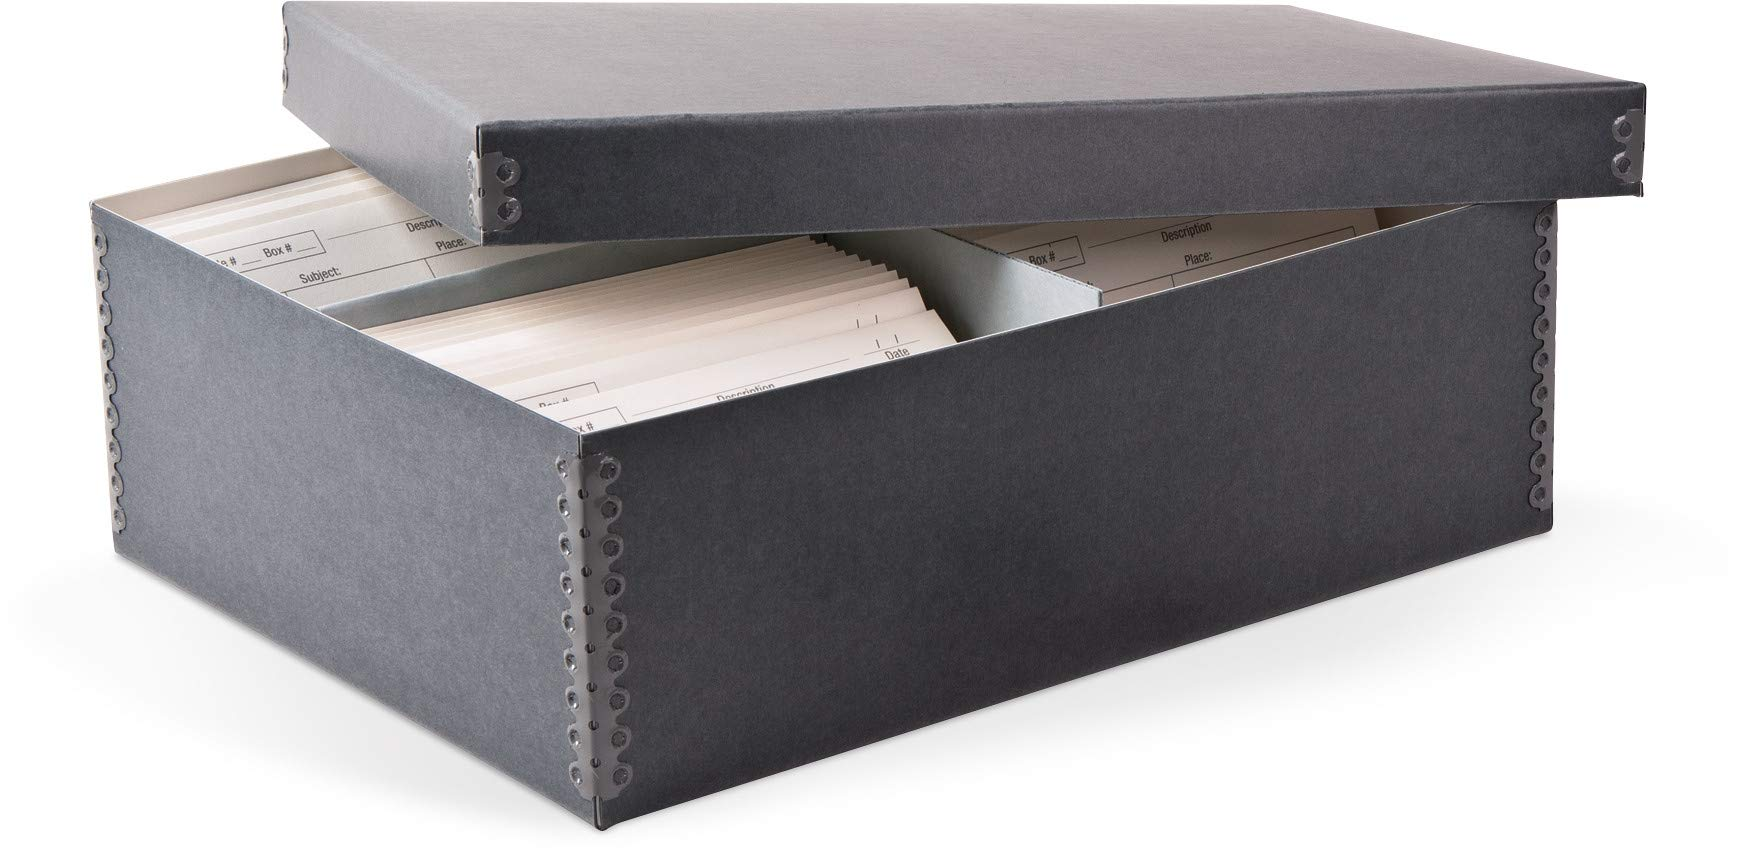 Gaylord Archival High-Capacity Photo Storage Kit by Gaylord Archival